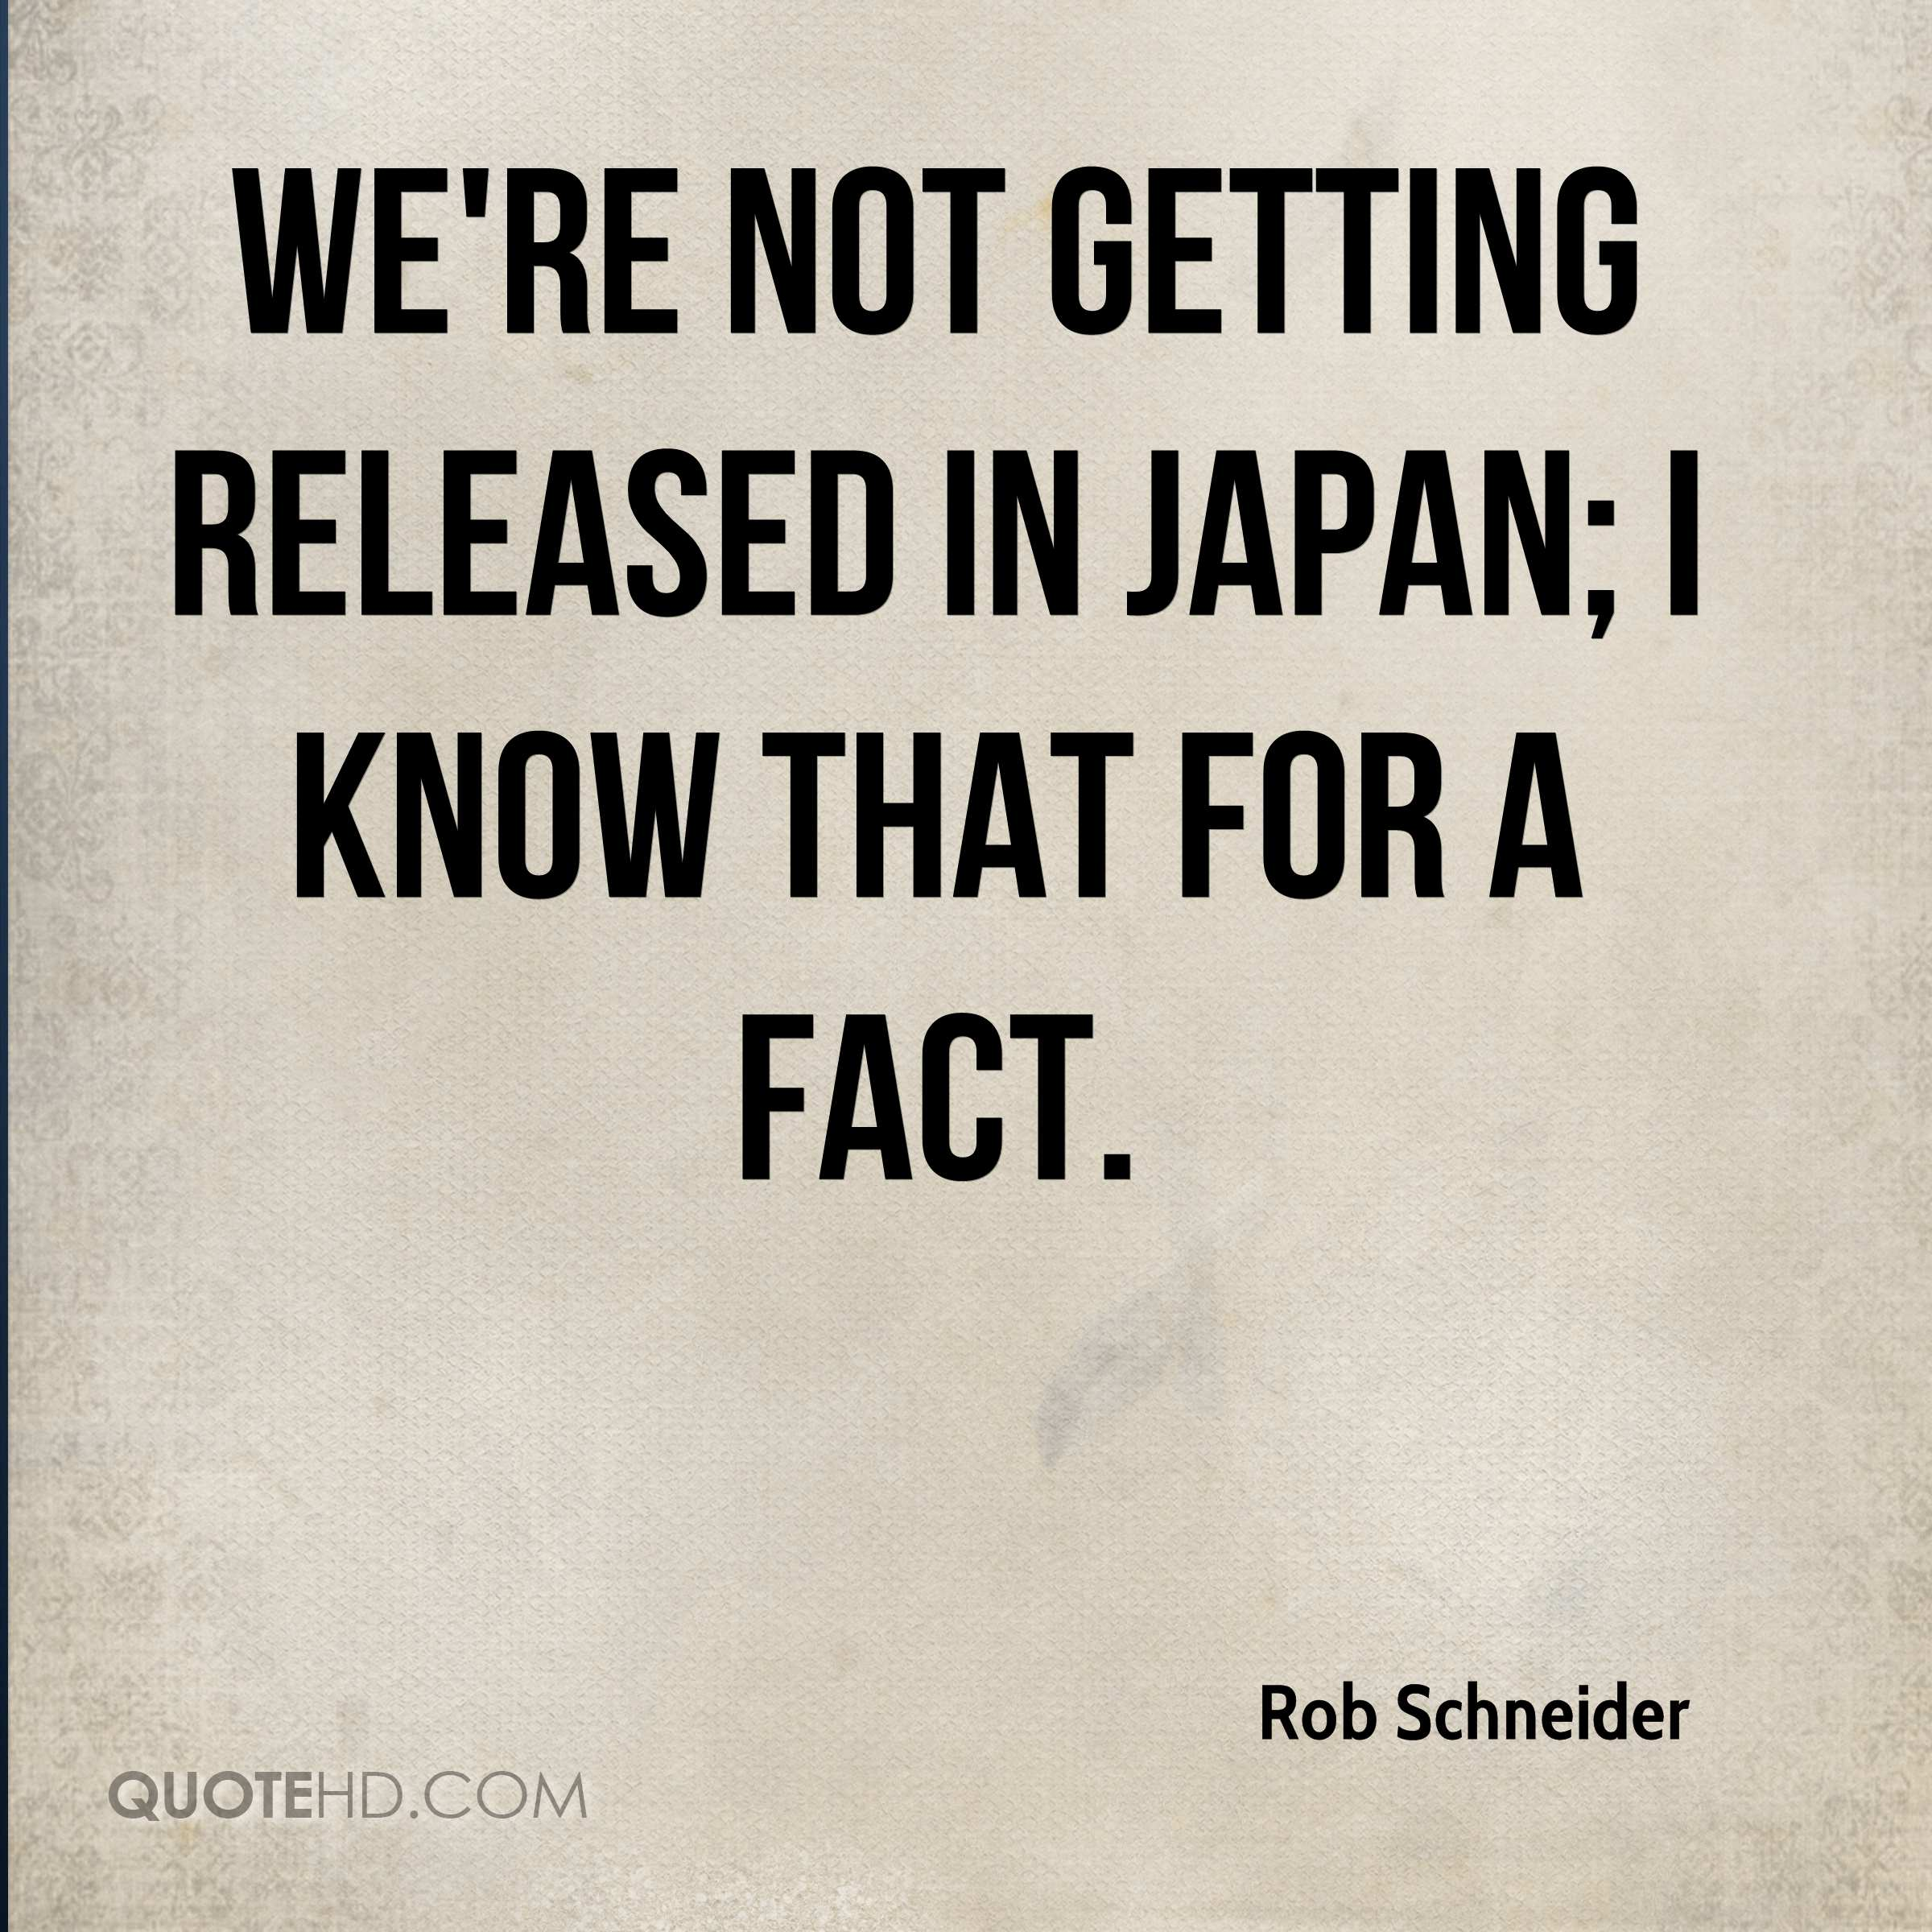 We're not getting released in Japan; I know that for a fact.